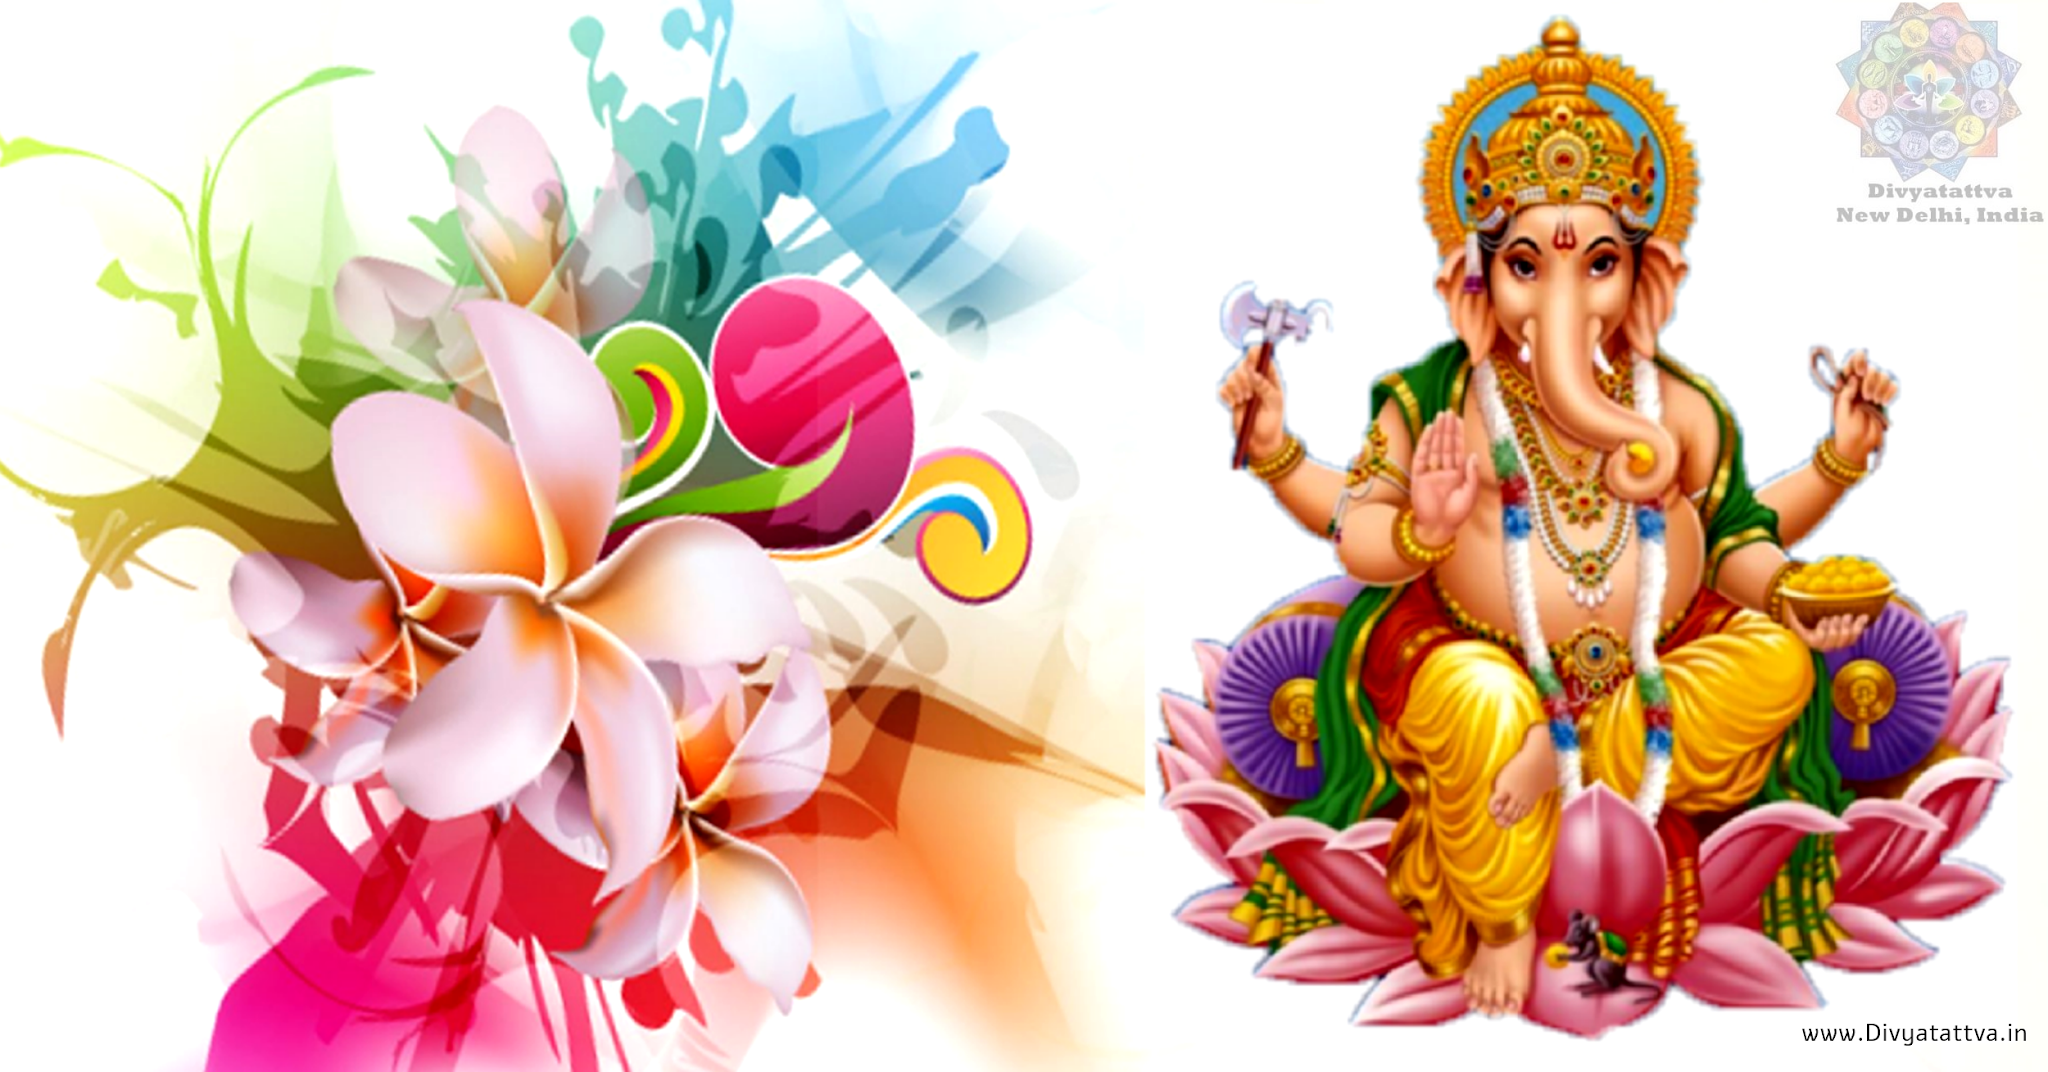 Hindu Festival Ganesh Chaturthi 3D Backgrounds, Siddhi Vinayak Wallpapers and Stock Photos